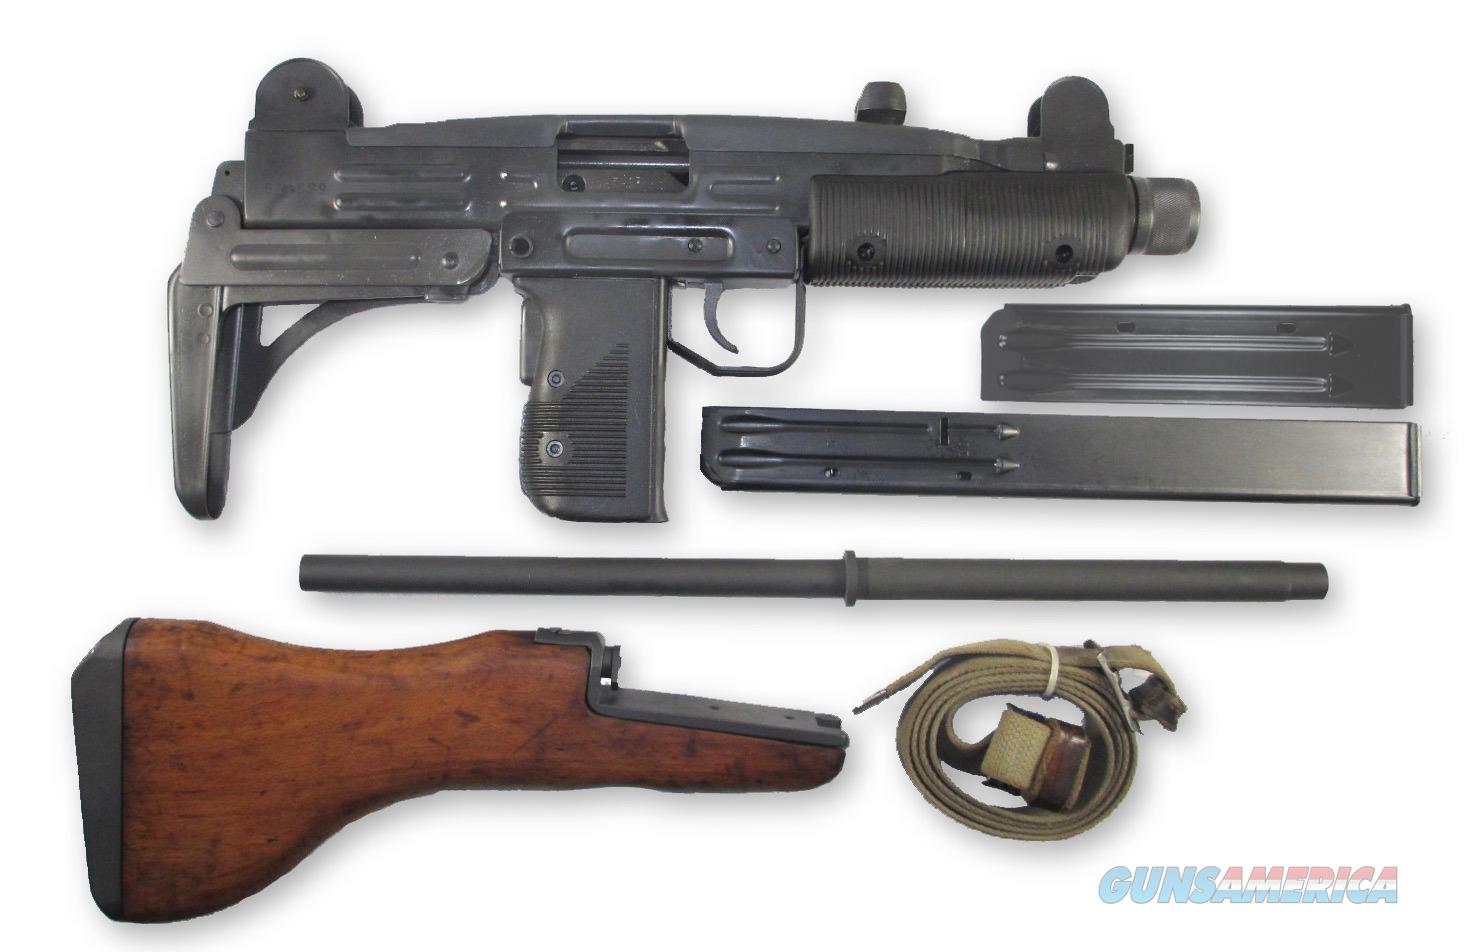 VECTOR ARMS UZI .45ACP FOLDER , SLING, EXTRA WOOD STOCK EXTRA 10 ROUND MAG  Guns > Rifles > IWI